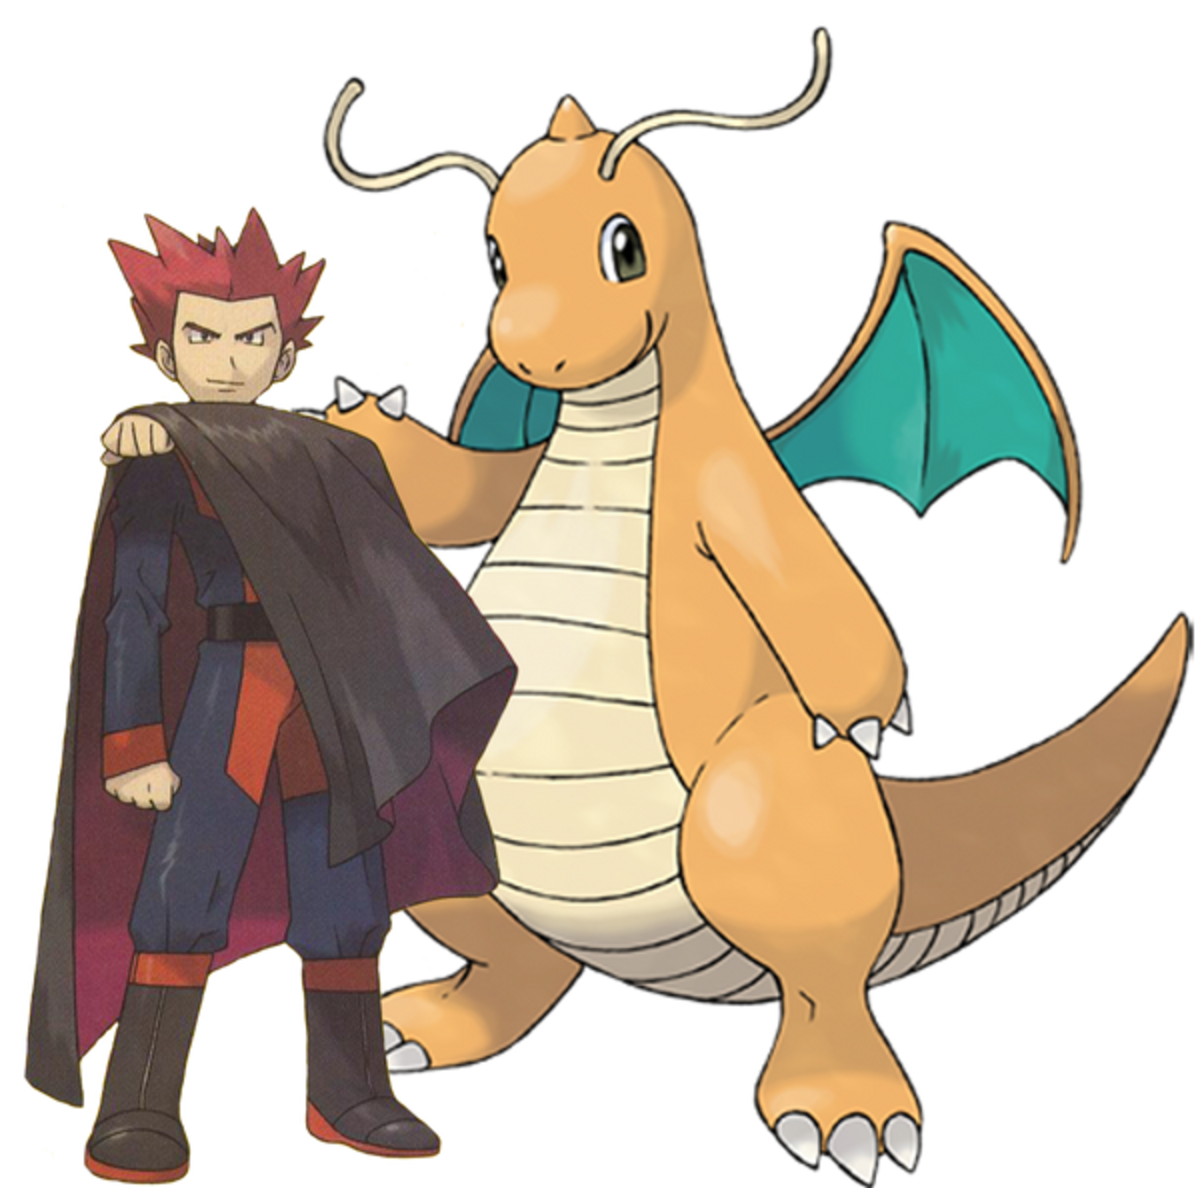 Lance and Dragonite